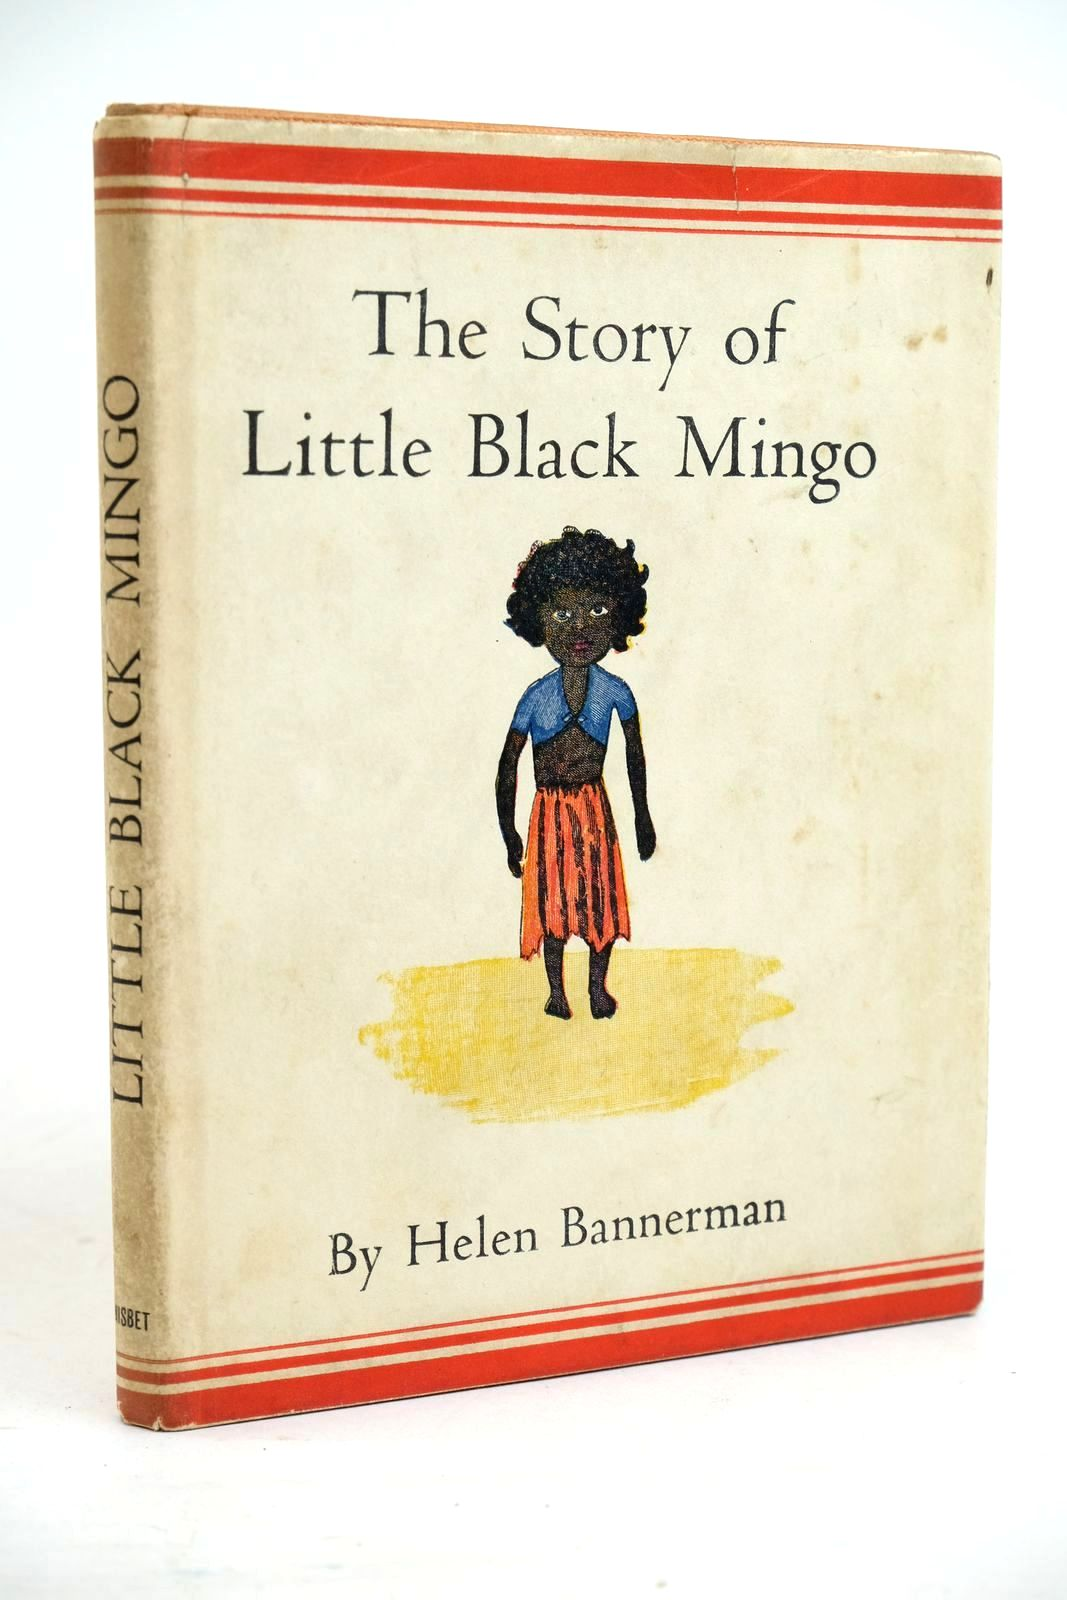 Photo of THE STORY OF LITTLE BLACK MINGO written by Bannerman, Helen illustrated by Bannerman, Helen published by Nisbet & Co. Ltd. (STOCK CODE: 1321157)  for sale by Stella & Rose's Books